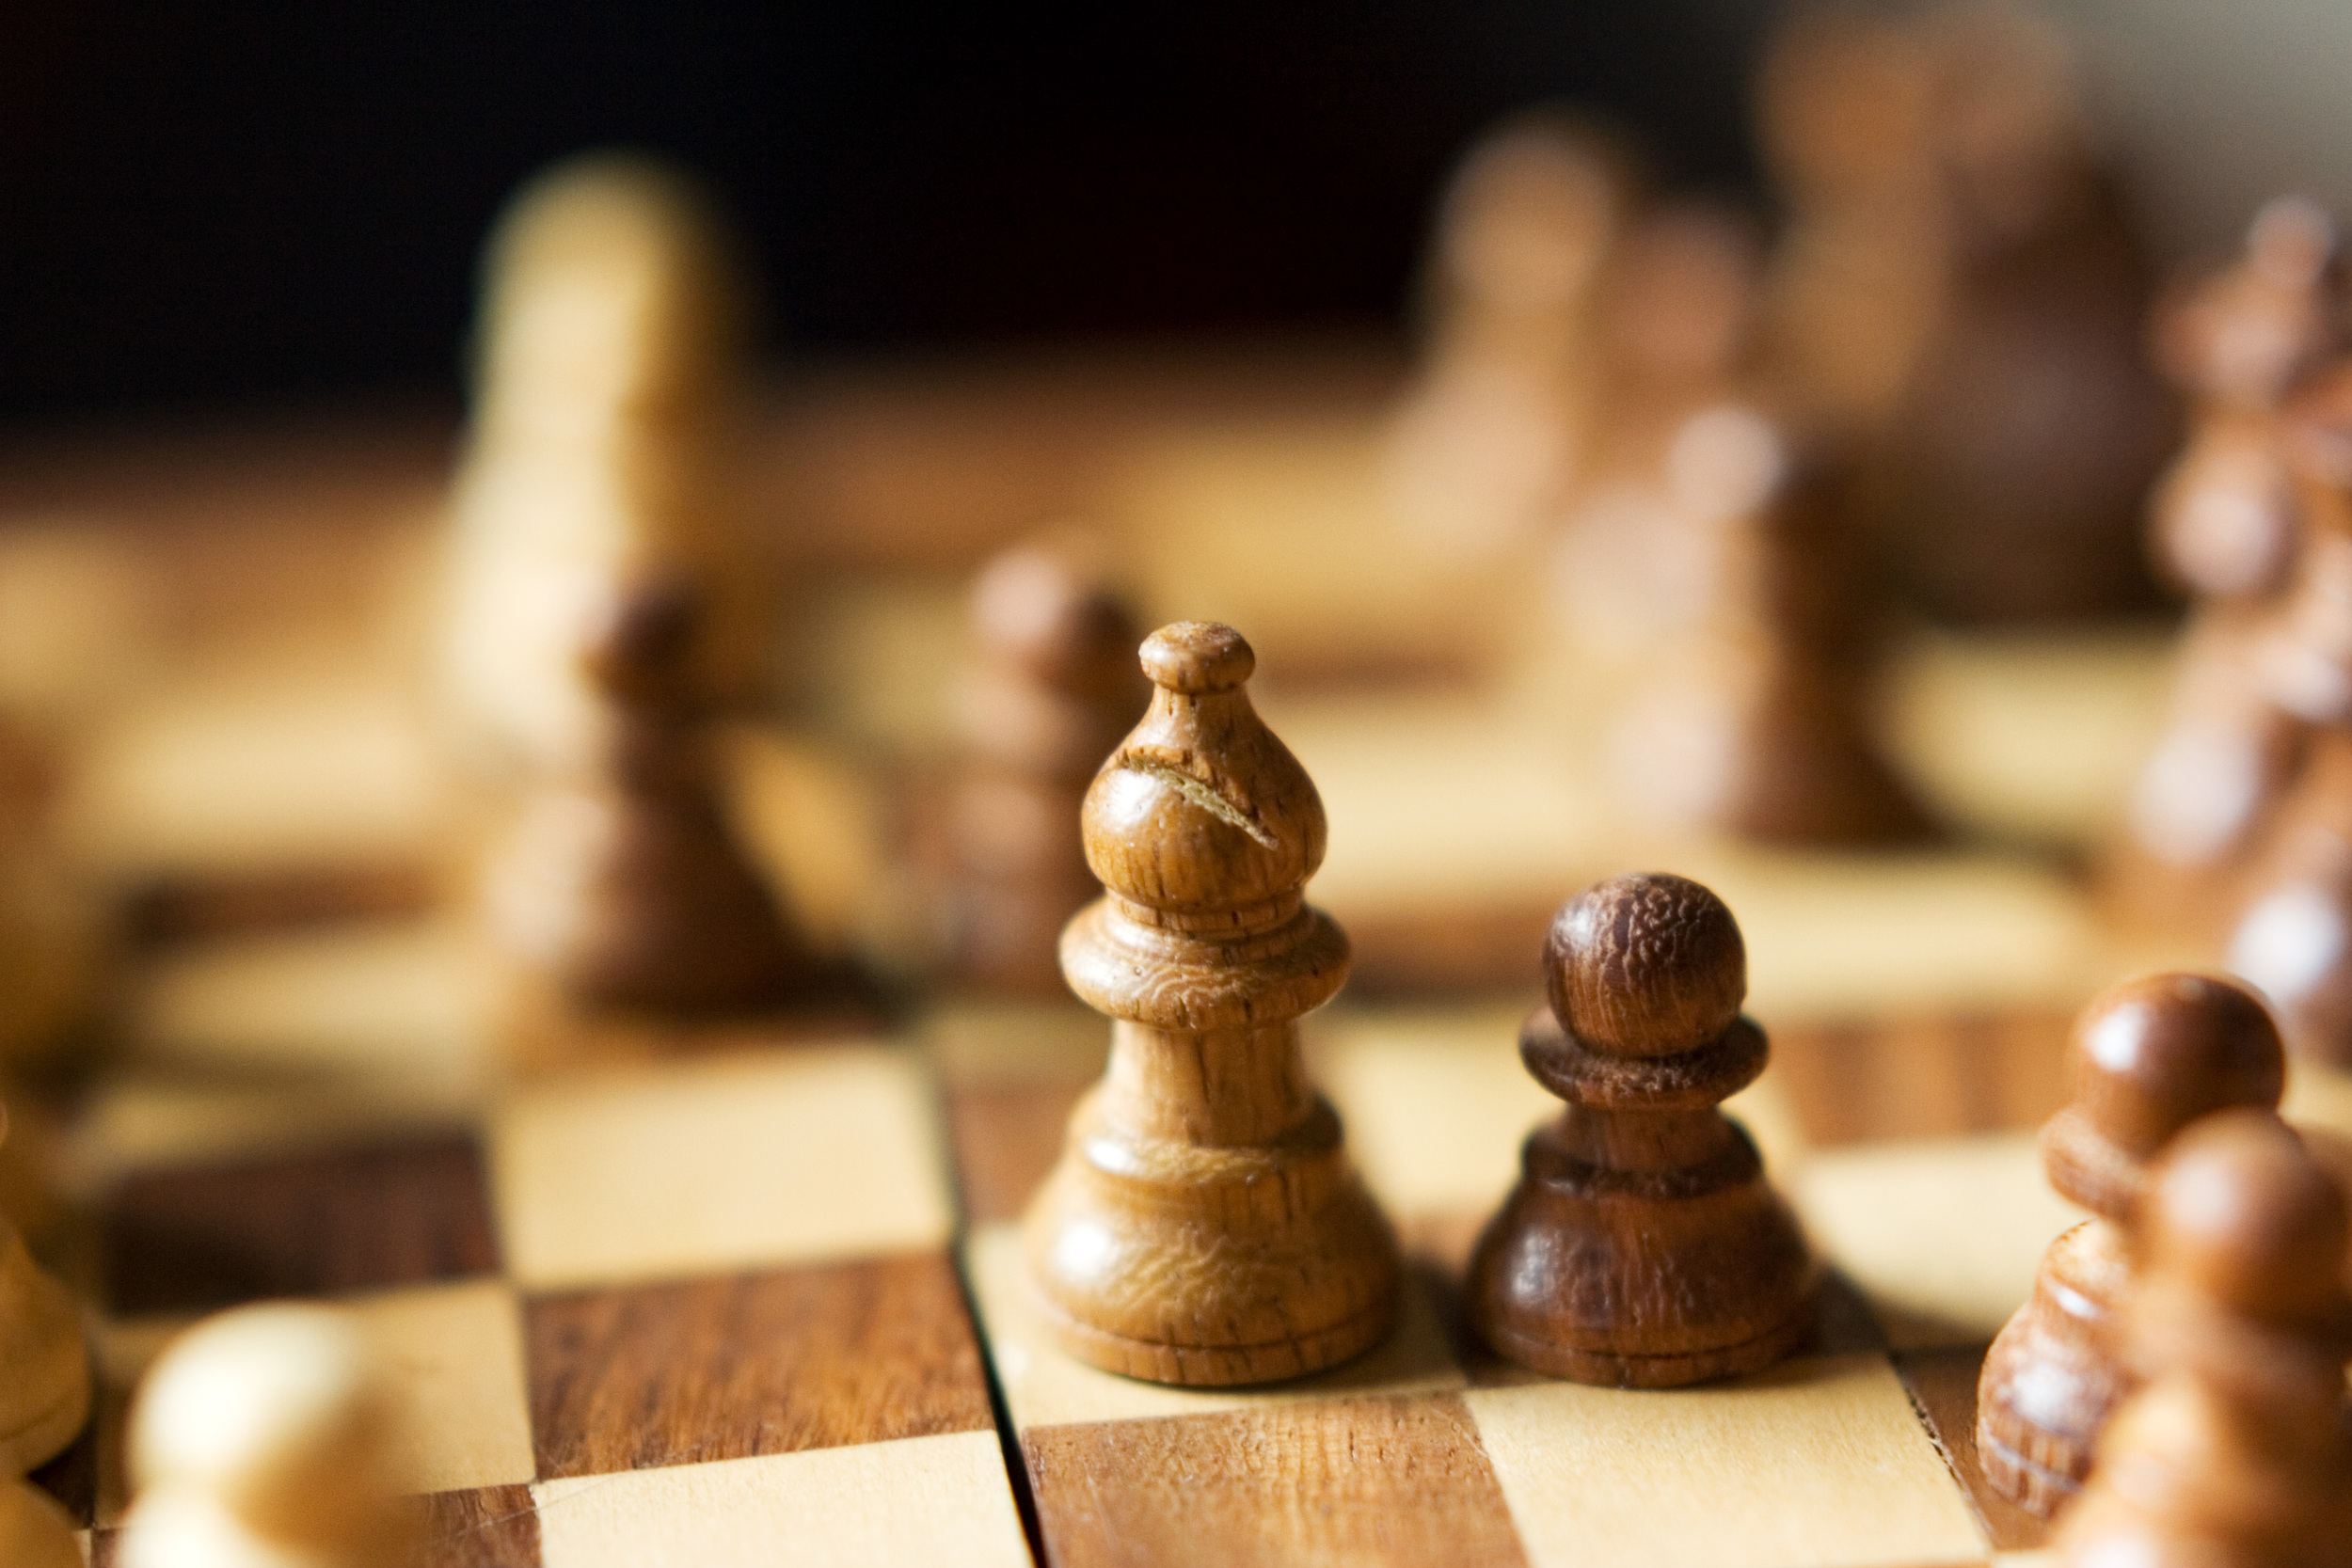 Do you understand the rules of your data quality? Just like chess, your data is bound by state dependent rules that must be obeyed otherwise defects ensue.